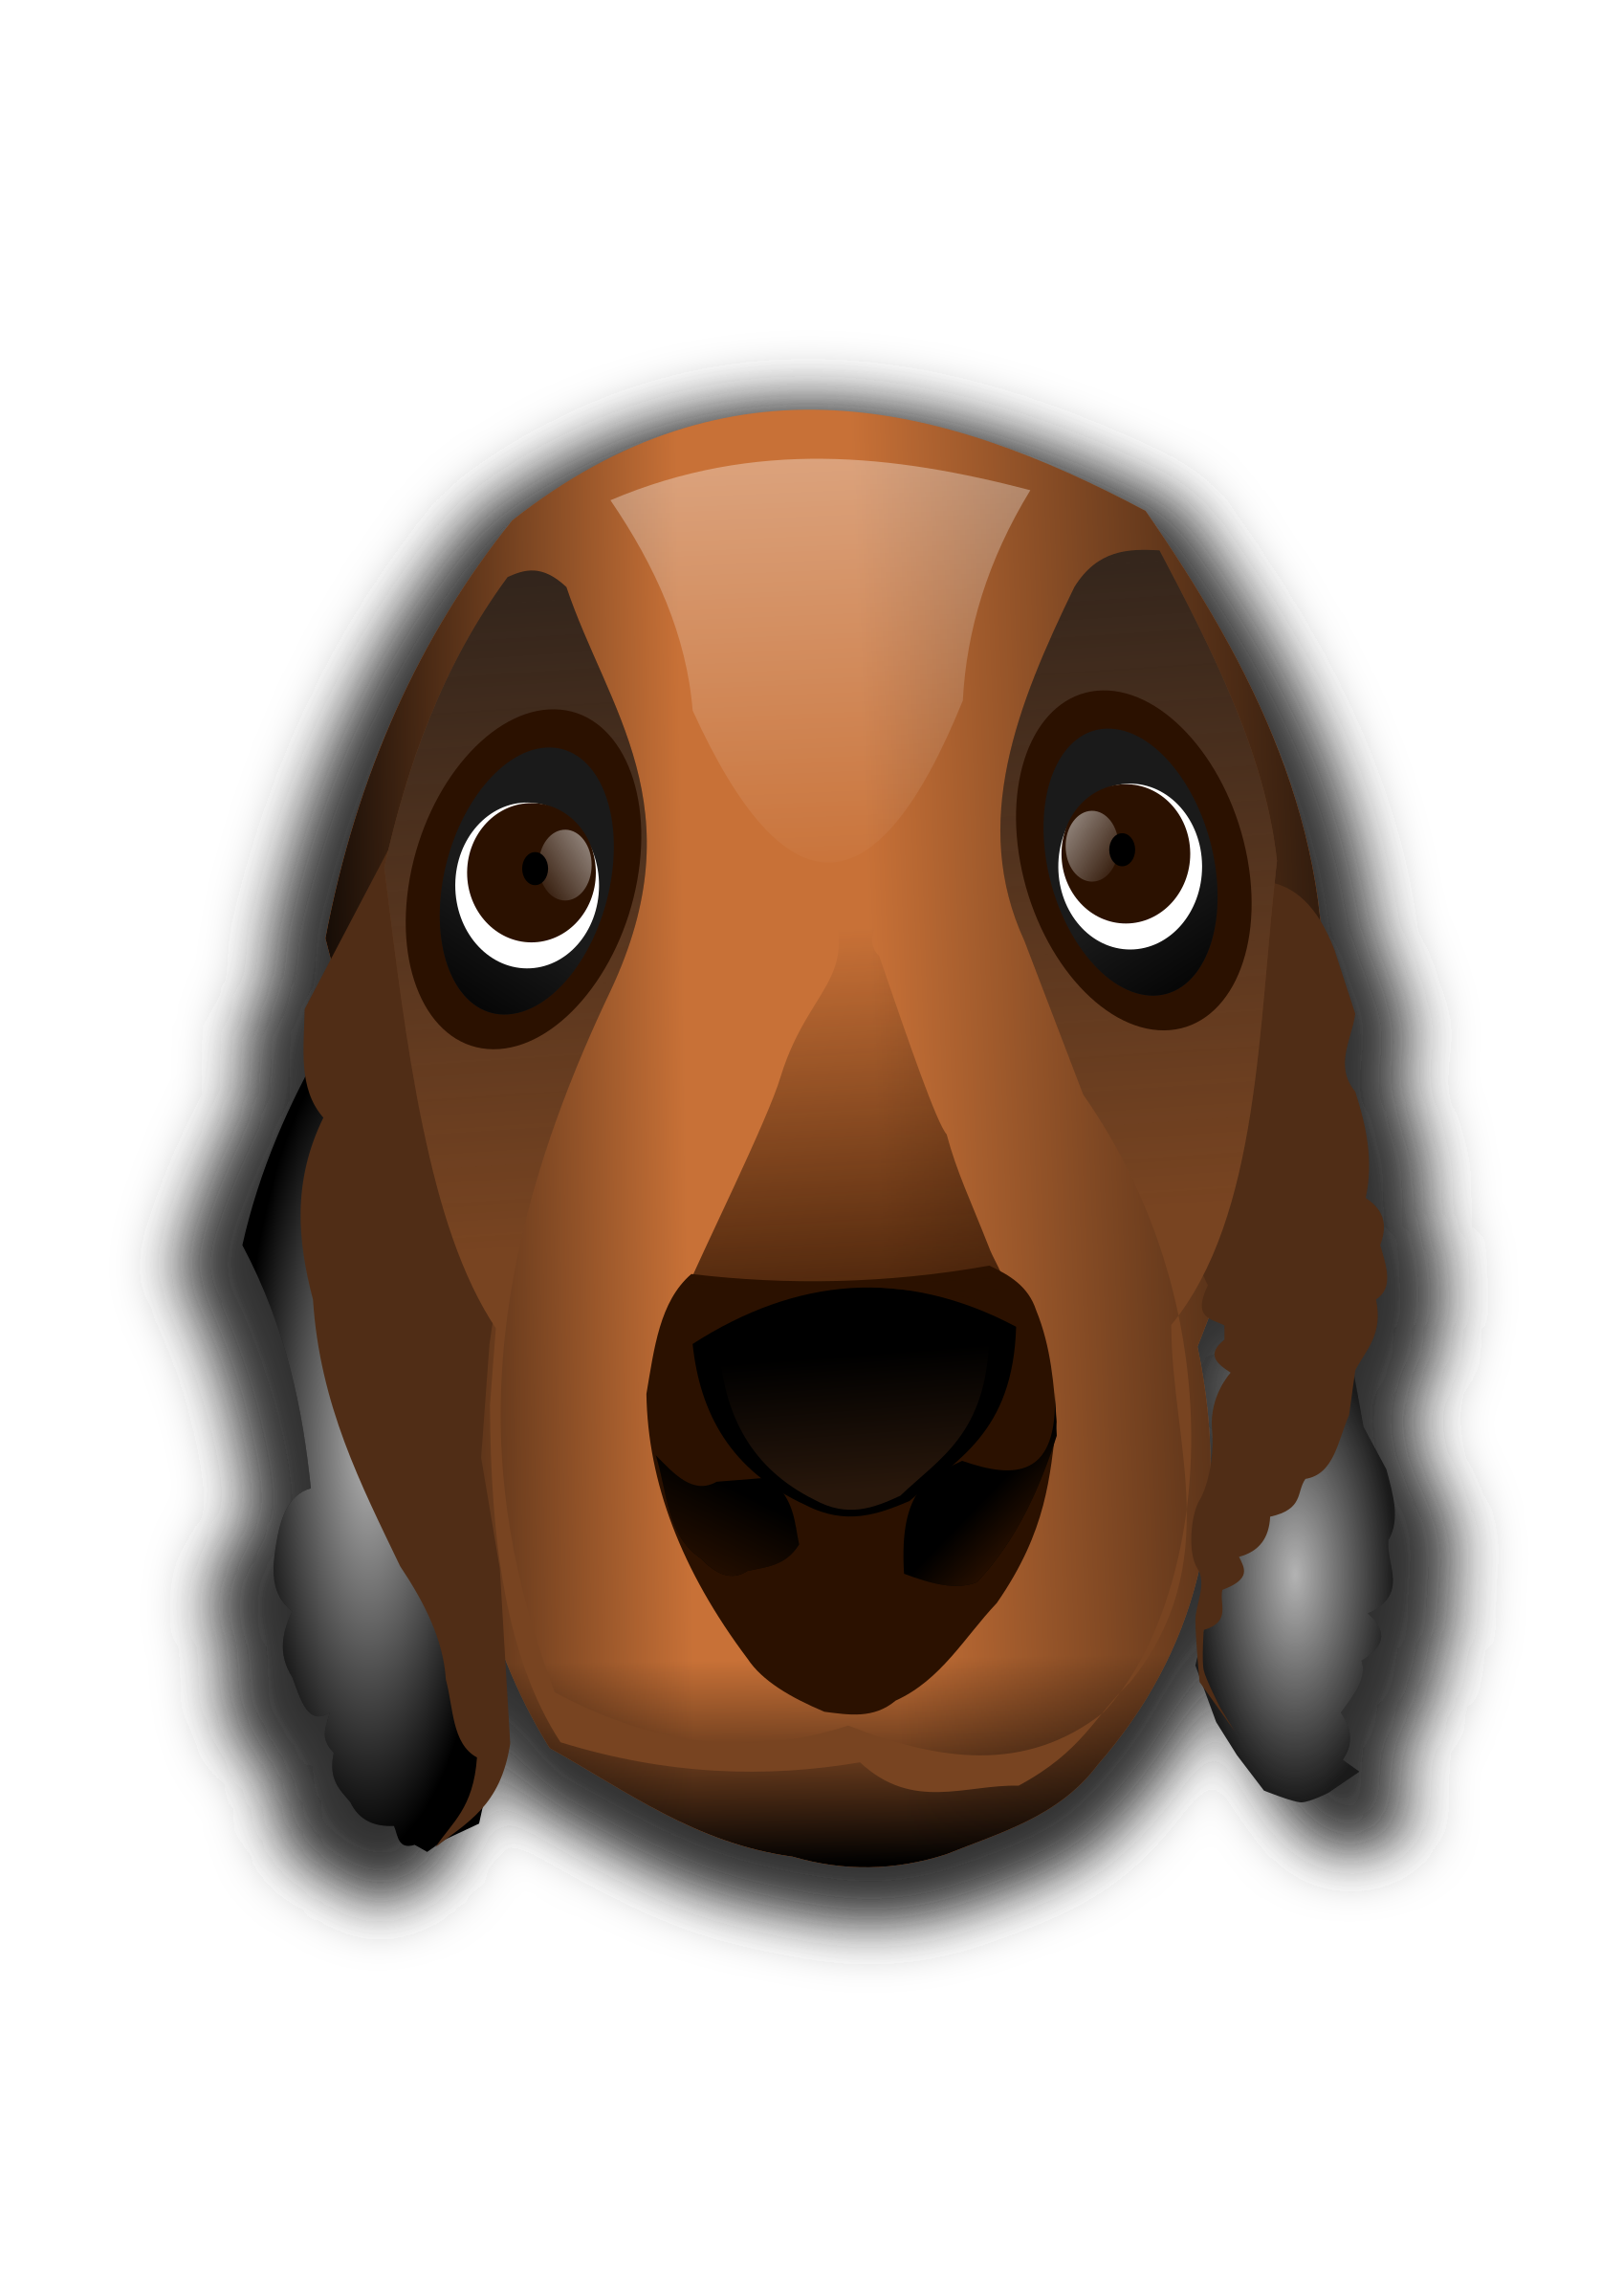 Head clipart dachshund. Dog big image png